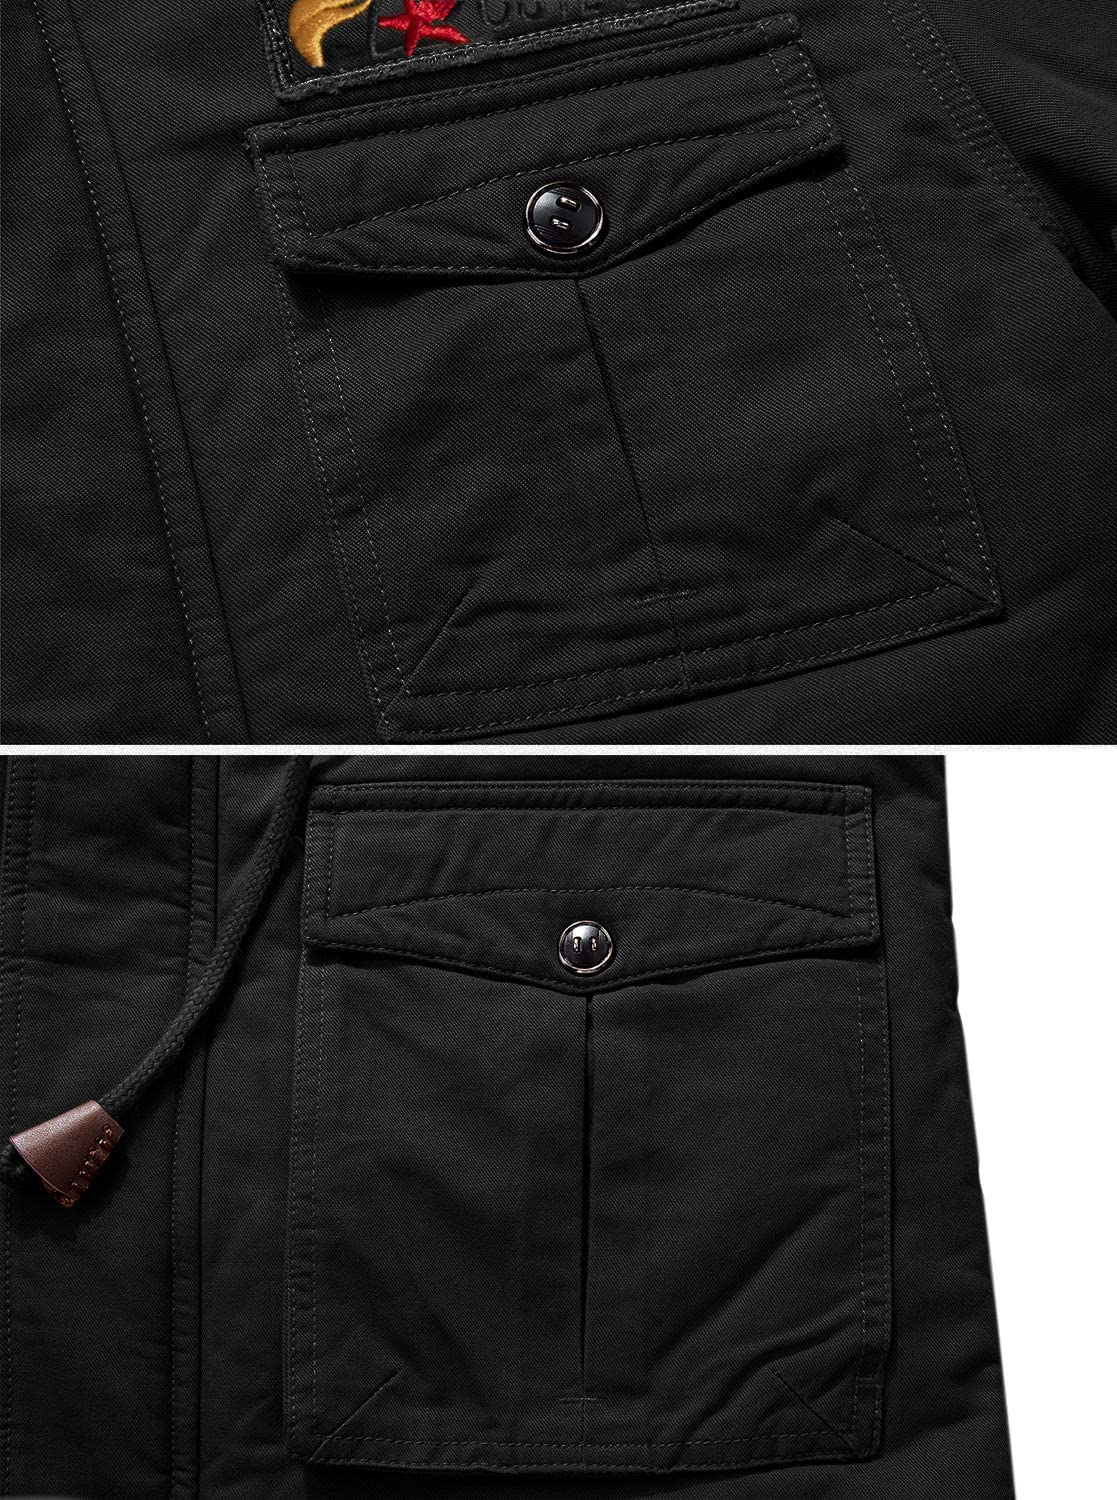 TACVASEN Men's Winter Thick Fleece Lined Cargo Military Jackets Casual Cotton Hoodies with Multi Pockets Black